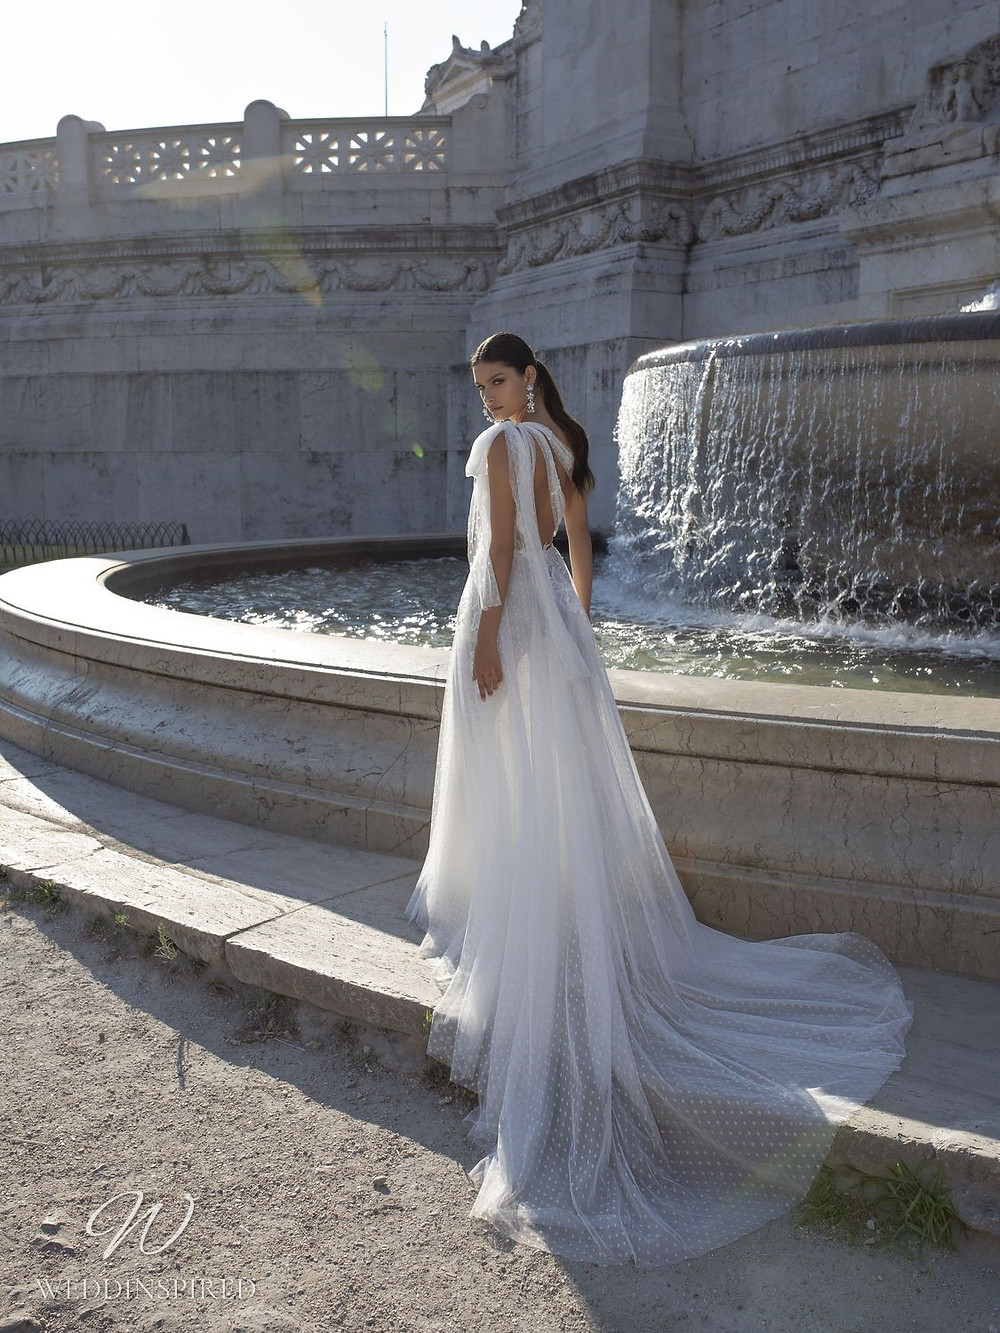 A Pinella Passaro one shoulder tulle A-line wedding dress with a bow